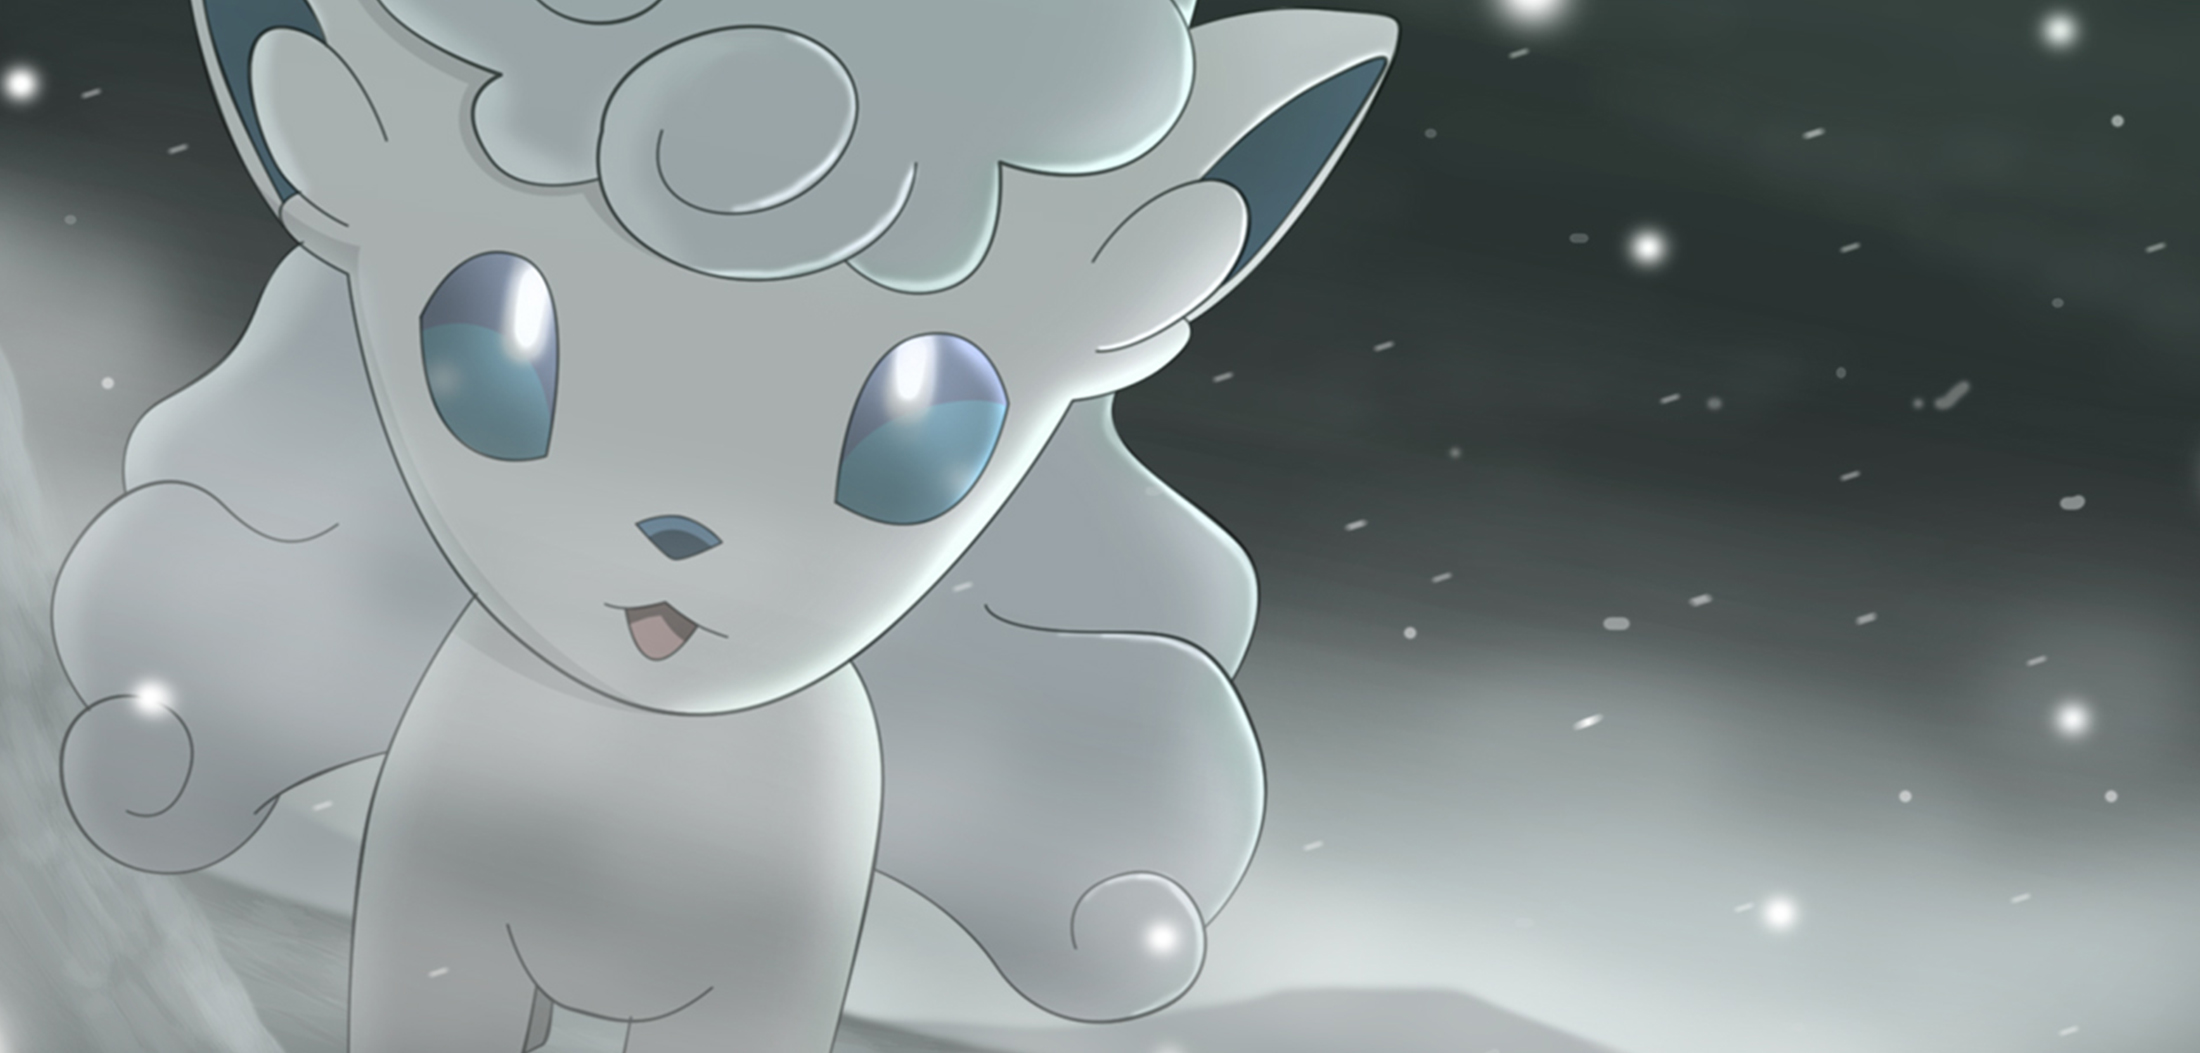 ... Sun And Moon Vulpix (Pokémon) Alolan Vulpix Pokémon Wallpaper